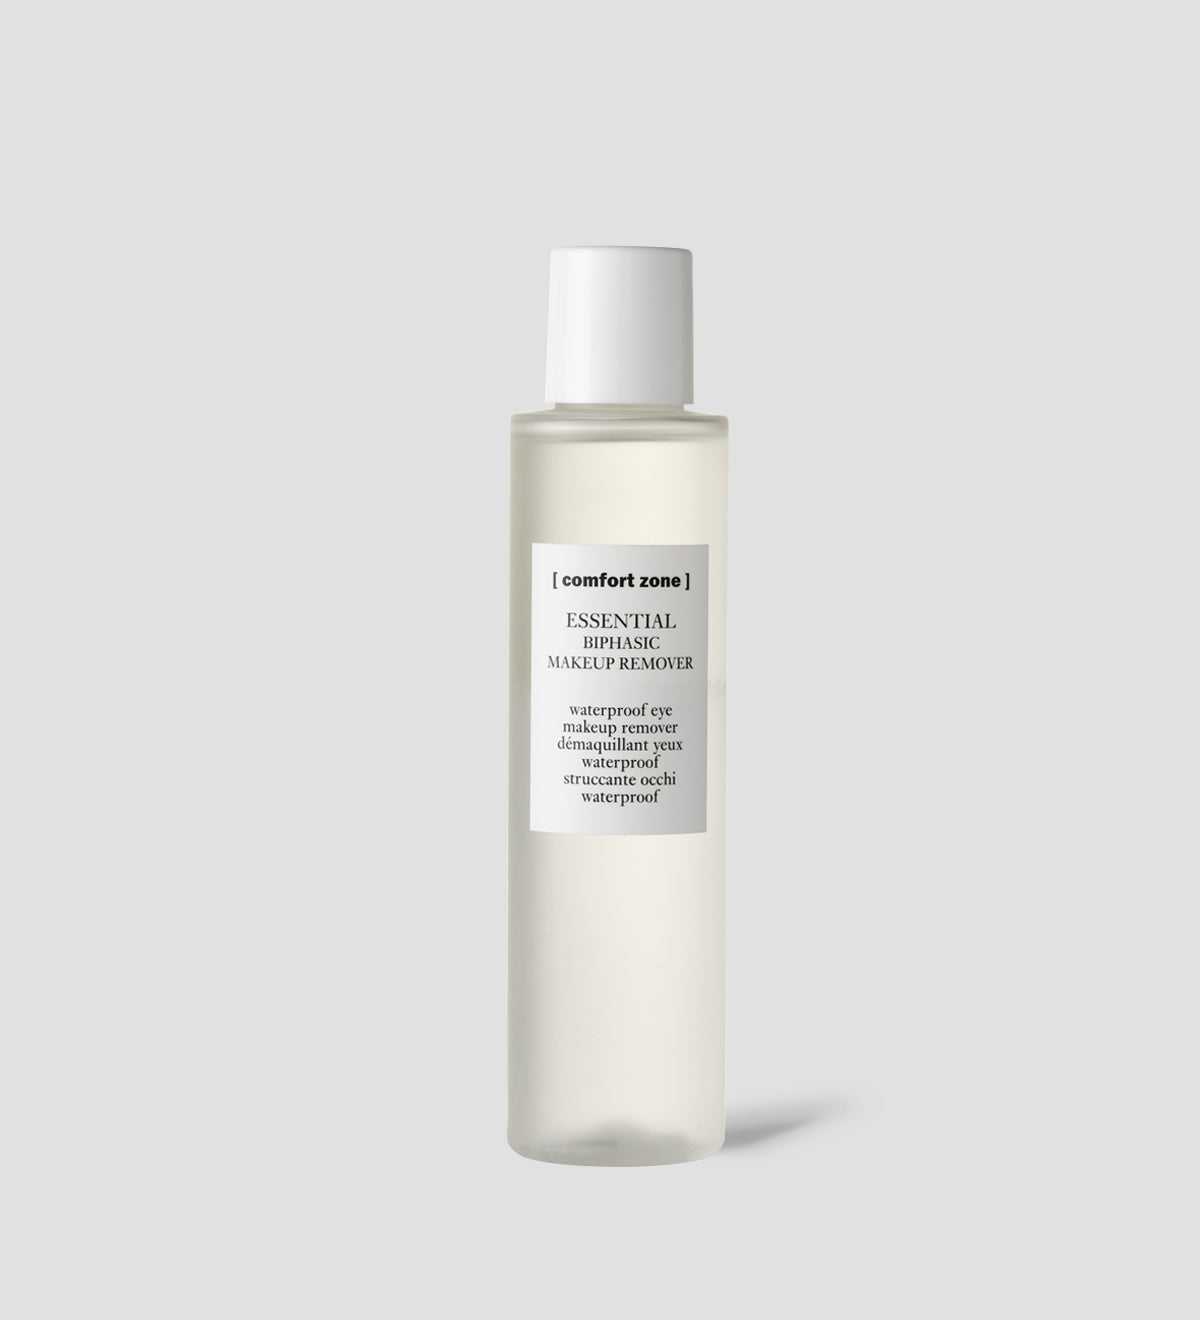 Comfort Zone: ESSENTIAL BIPHASIC MAKEUP REMOVER Waterproof eye makeup remover-1